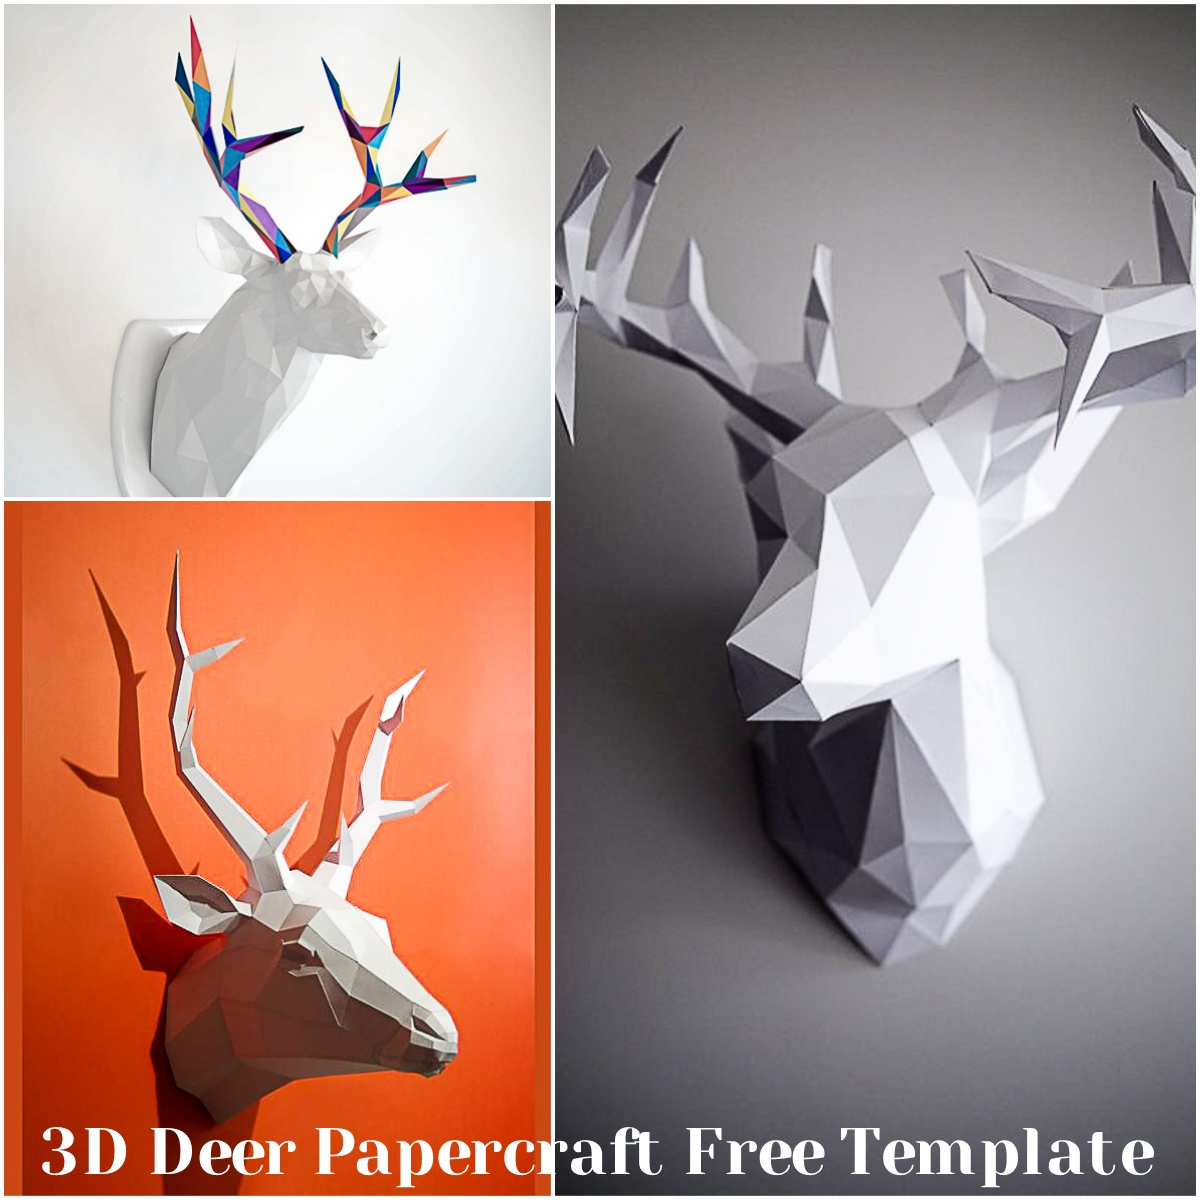 Printables And Paper Crafts | Free Download | Cgispread - Free Printable Paper Crafts